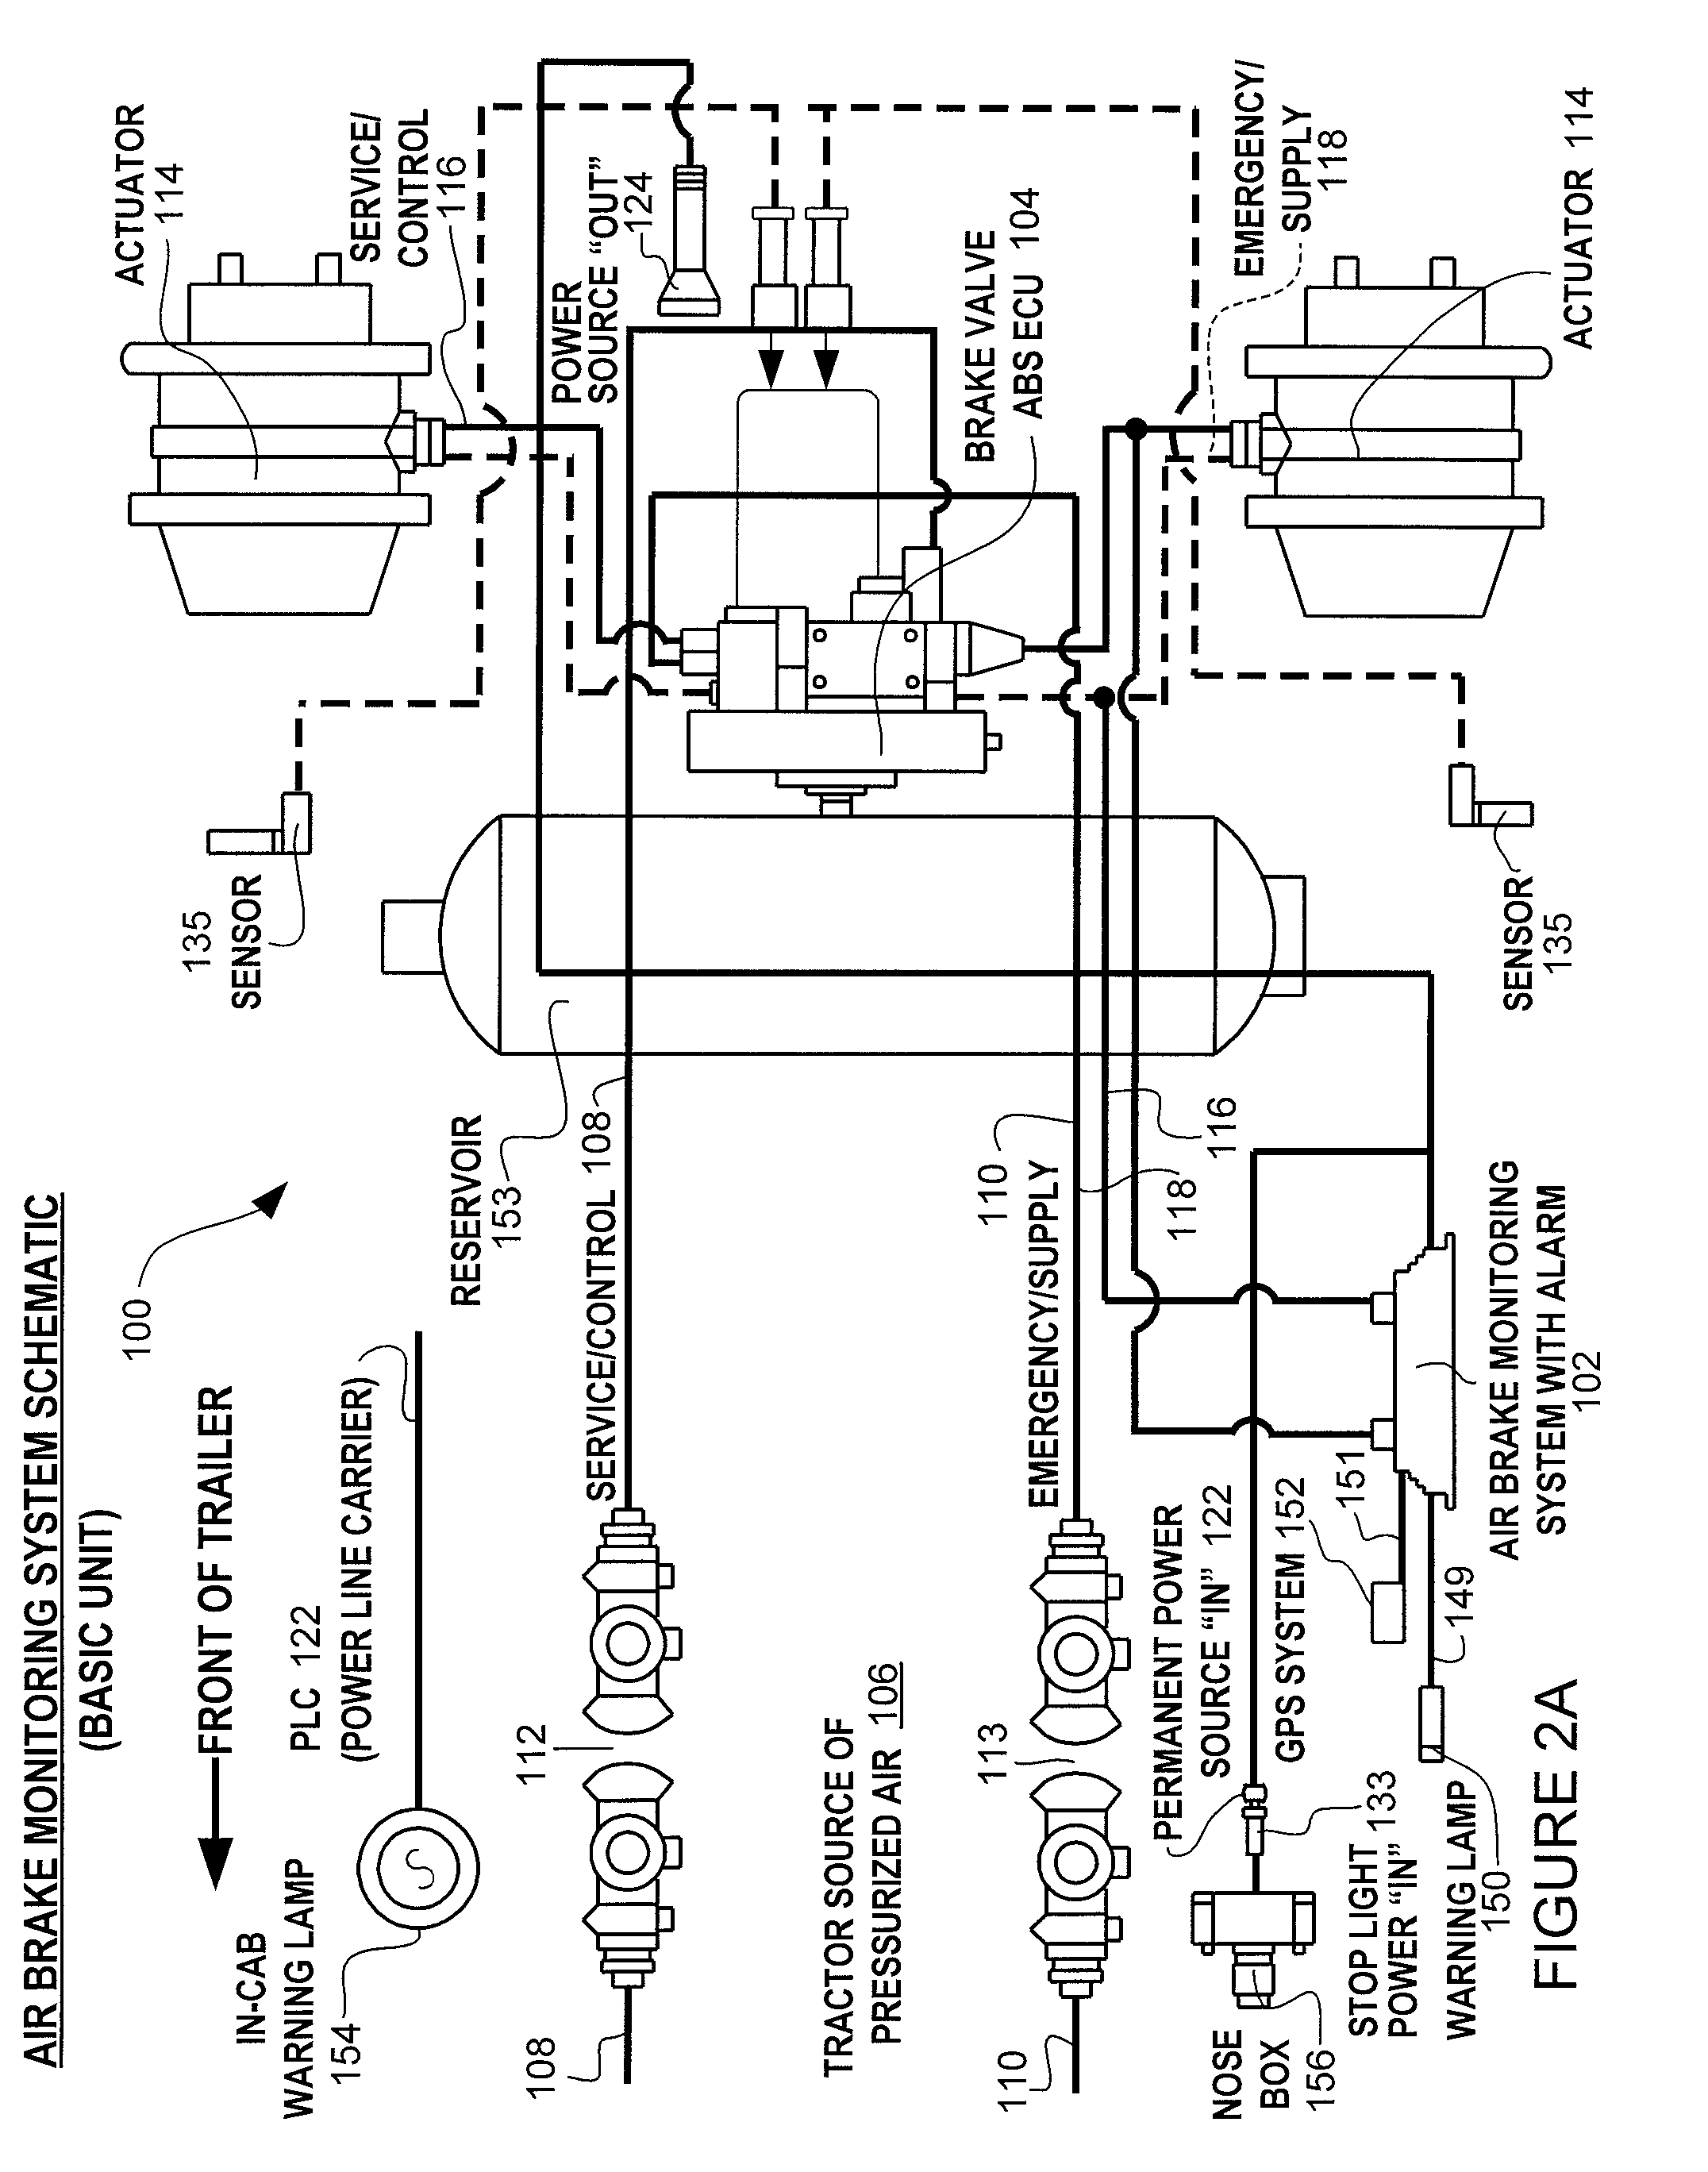 1uobq Find 2005 Ram 1500 Hemi Fuse Panel Diagram as well C5500 Starter Wiring Diagram as well Ans0508 furthermore Cummins system diagrams furthermore Instrument Panel Fuse Box Diagram For. on kenworth truck electrical wiring